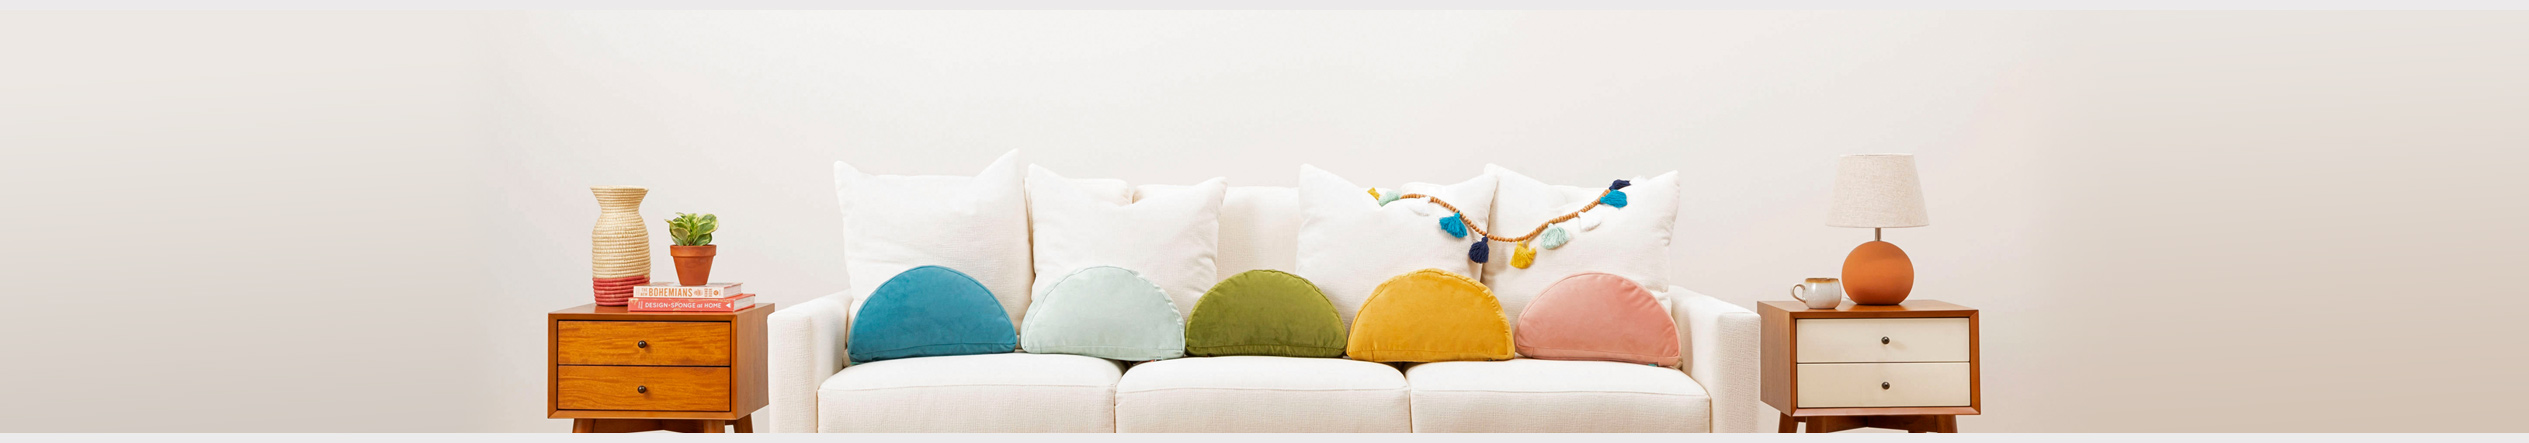 Jonathan Louis Design Lab Sofa with unique & colorful half-moon pillows